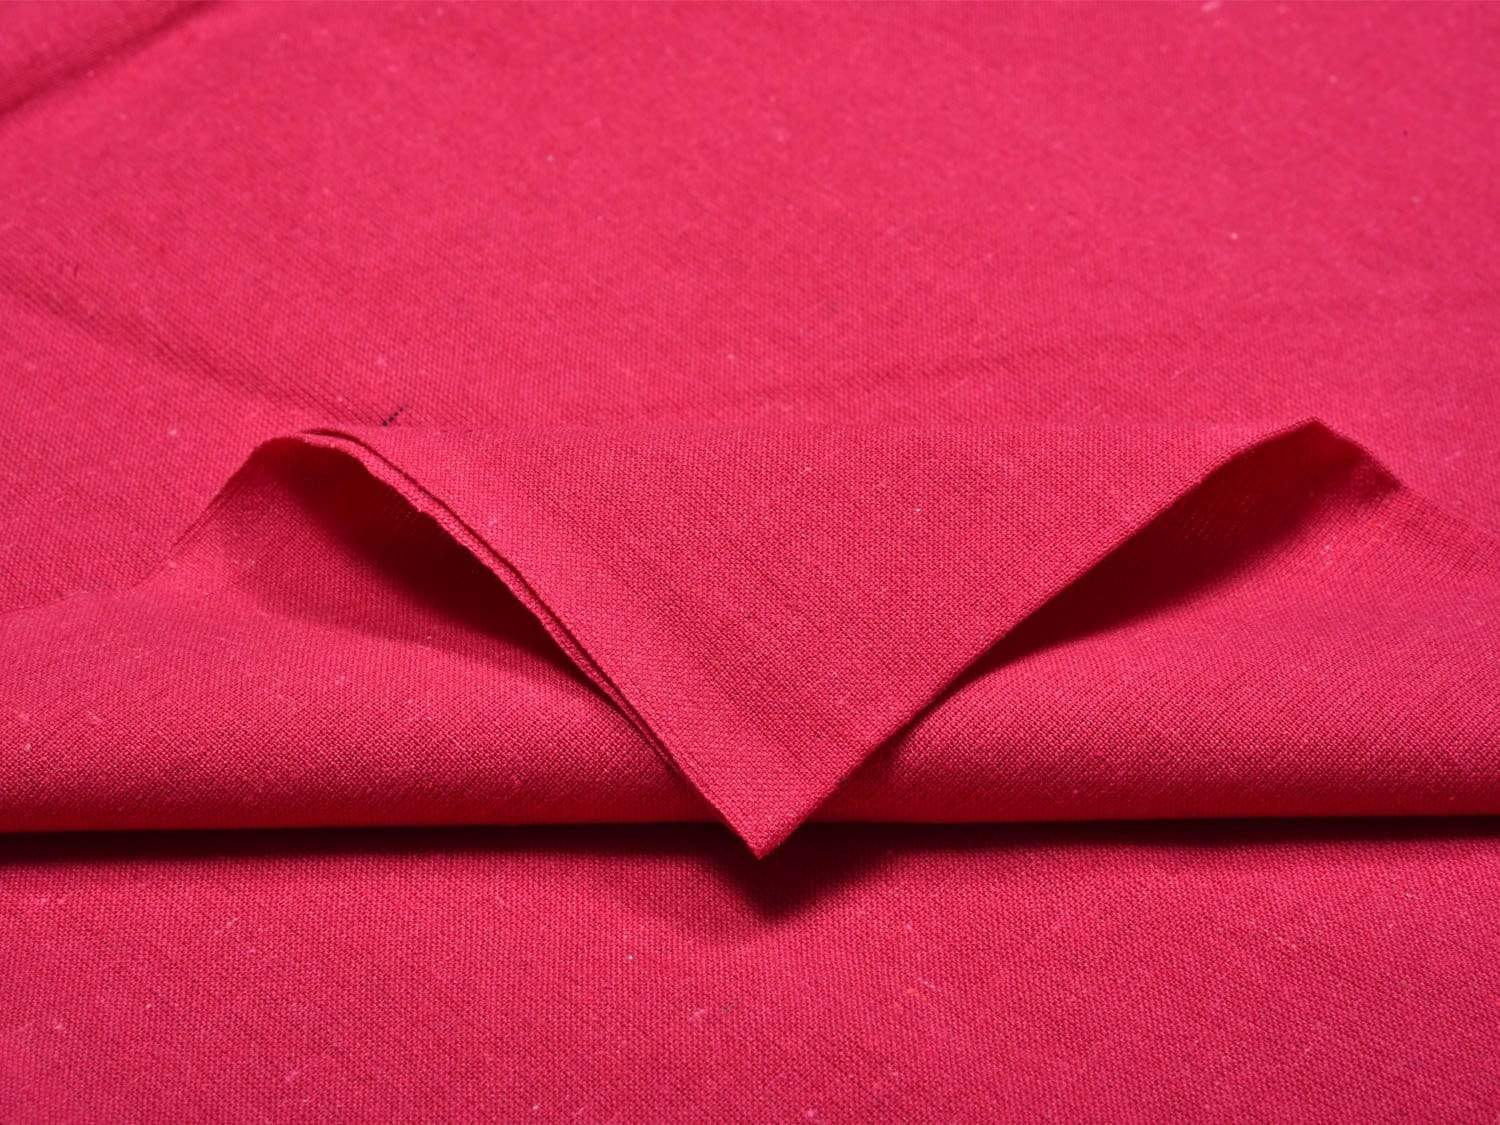 Pink Cotton Handloom Fabric Material with Plain Design f0154